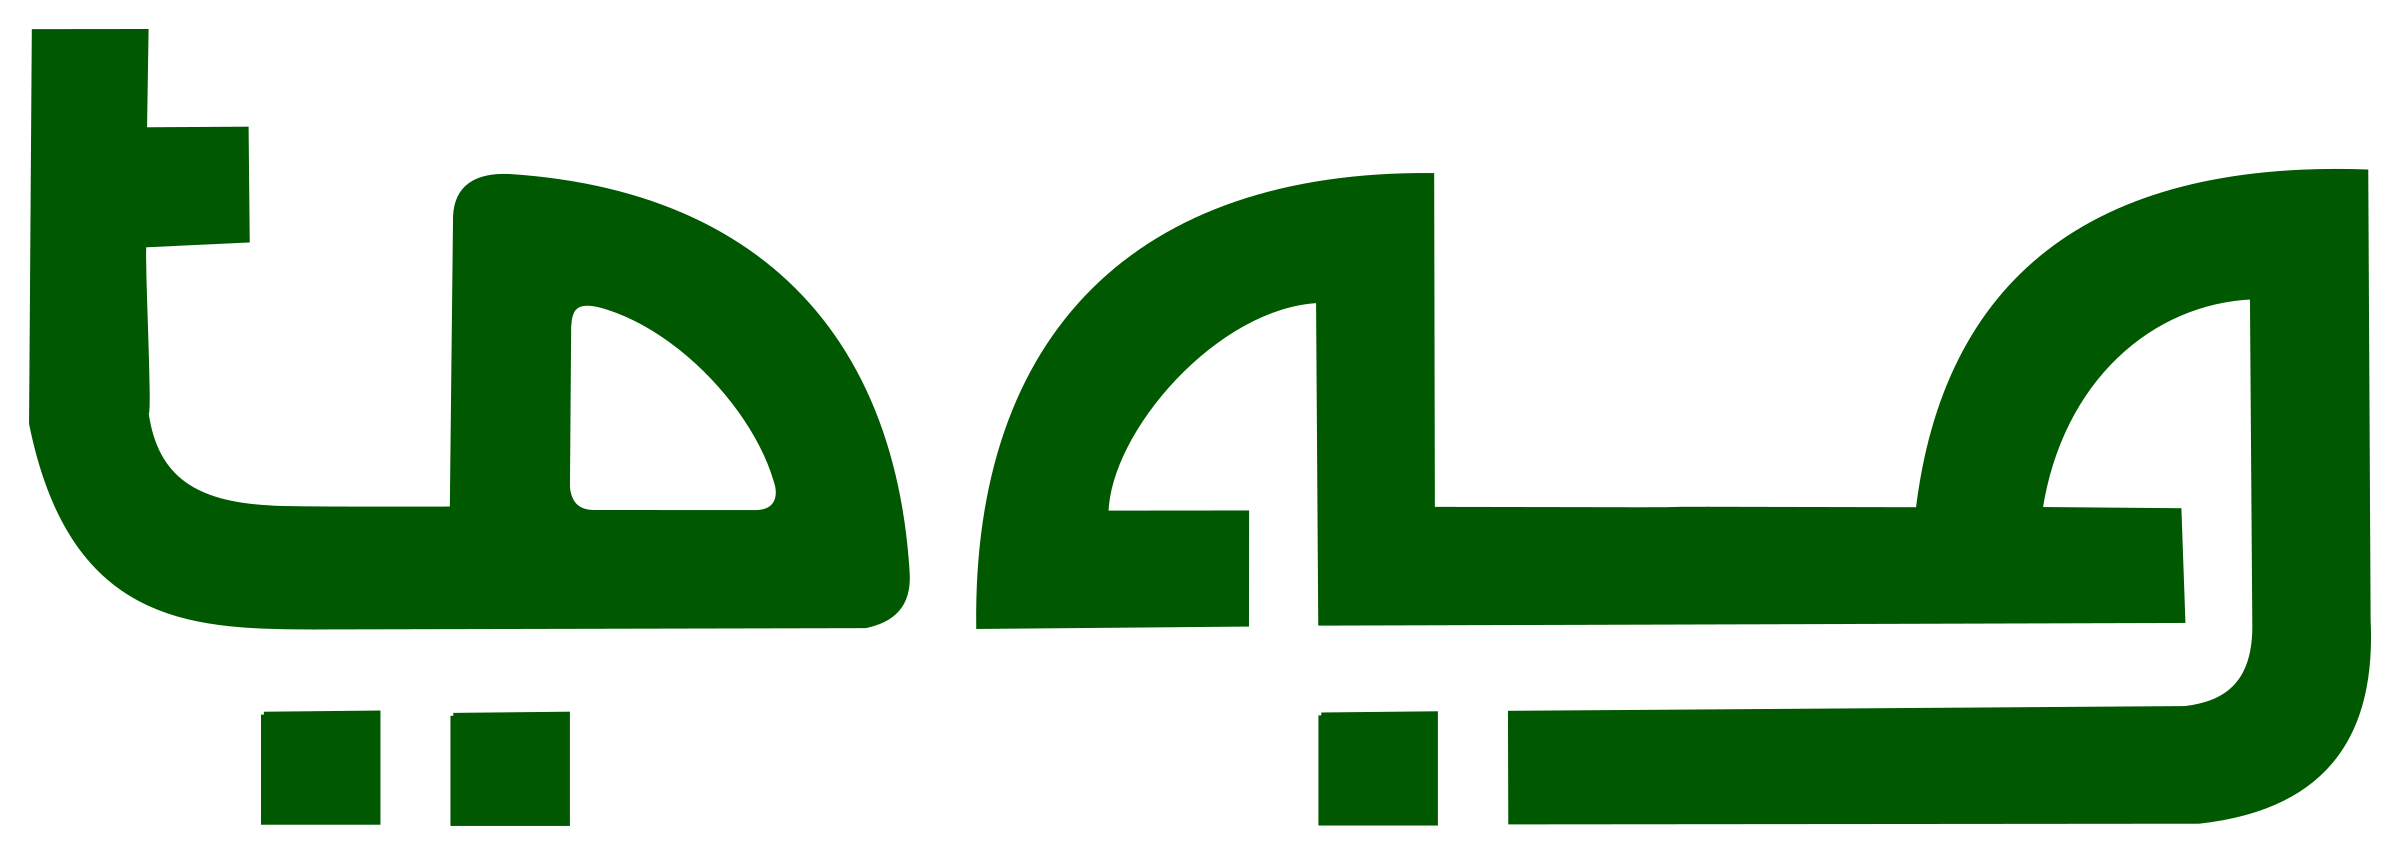 Psuedo-Arabic styled signboard by Lalitpatanpur